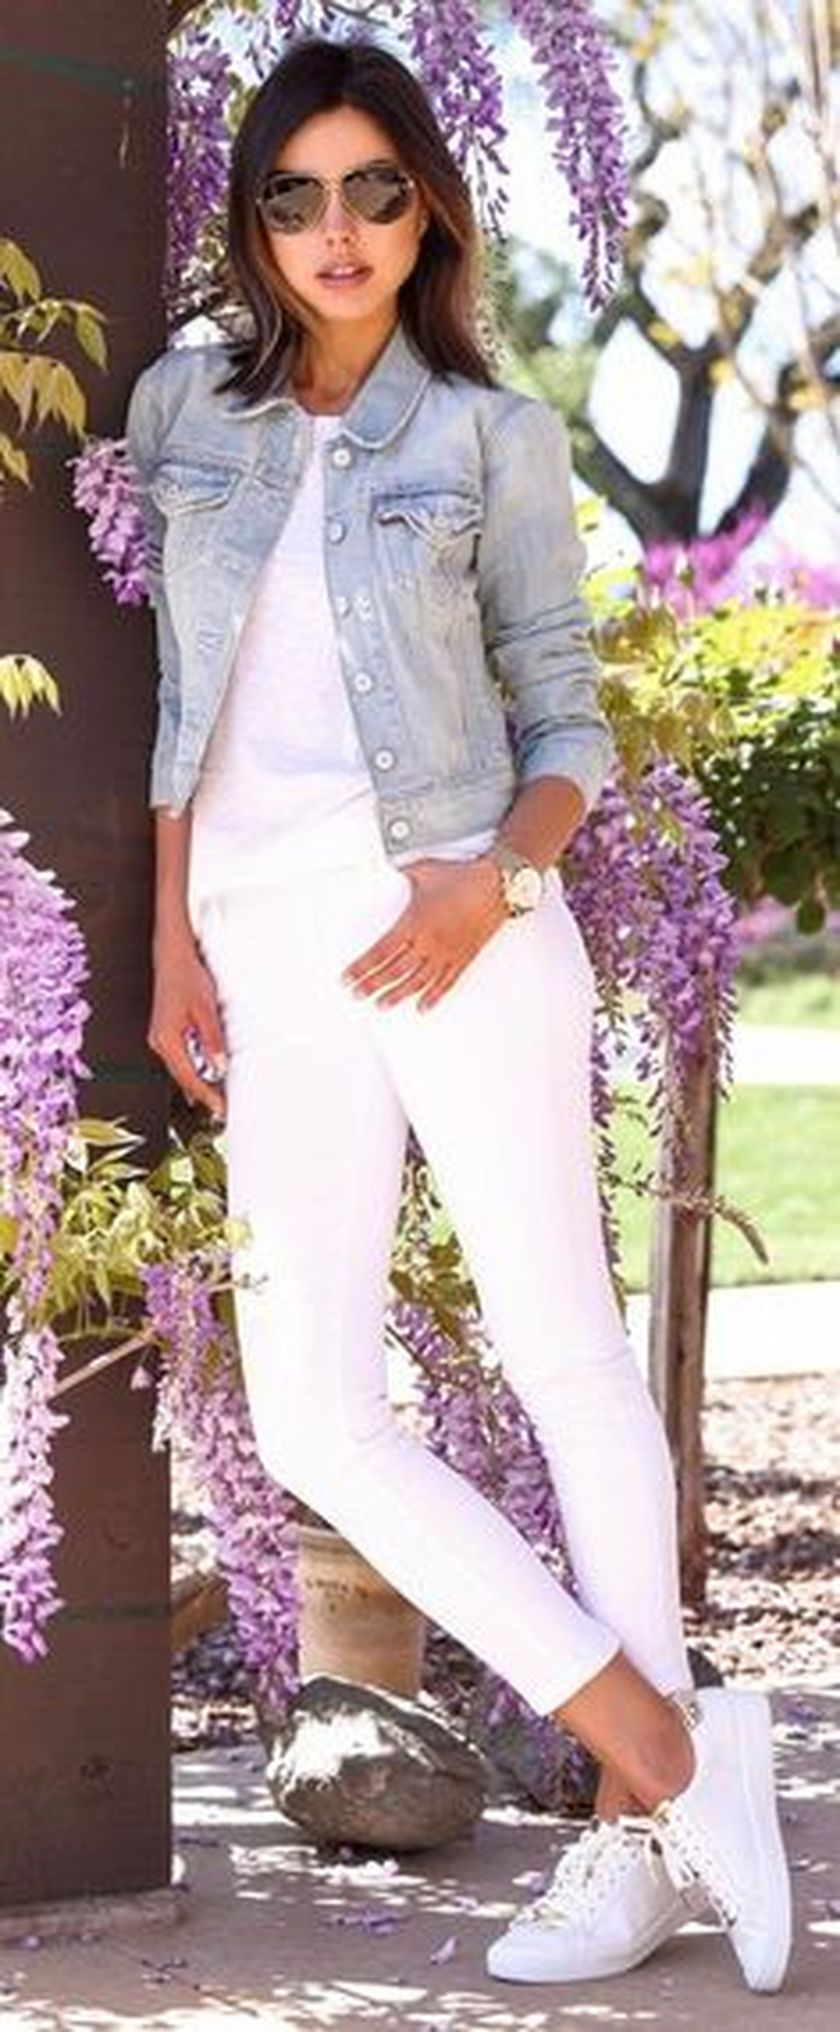 How to wear white sneaker for spring outfits 54